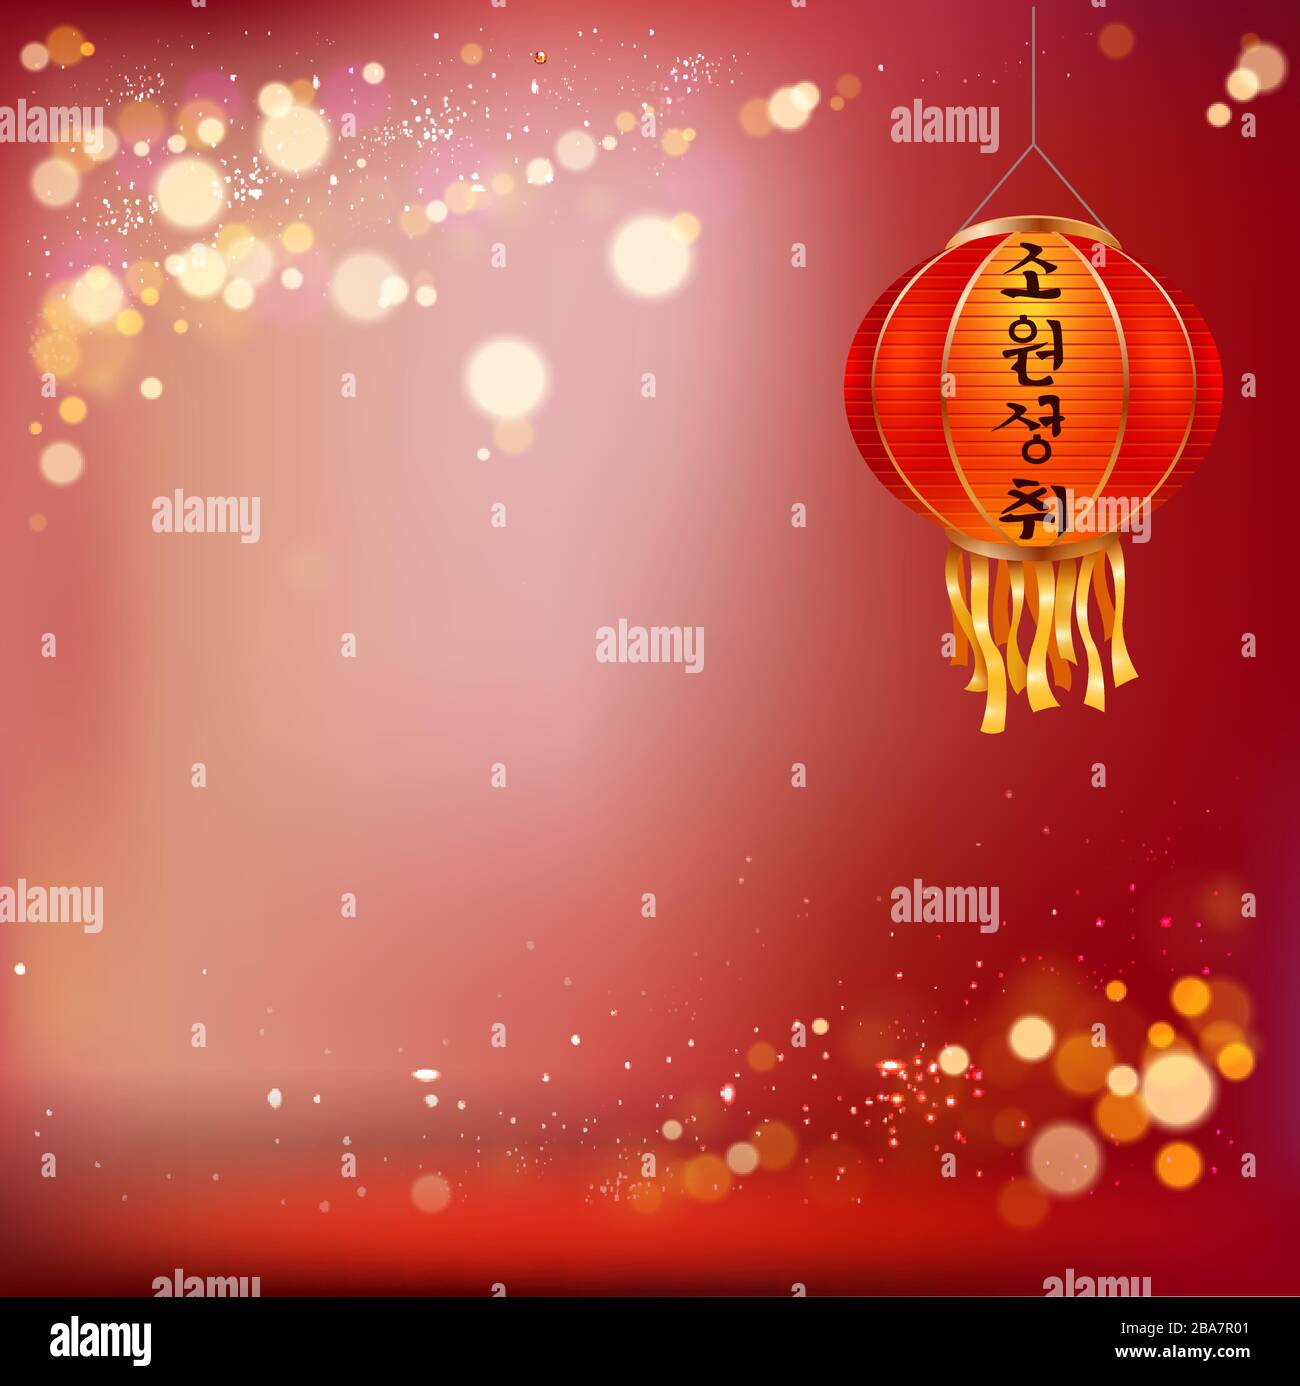 Abstract background with Chinese traditional red lantern and magic light on a red background. Stock Vector